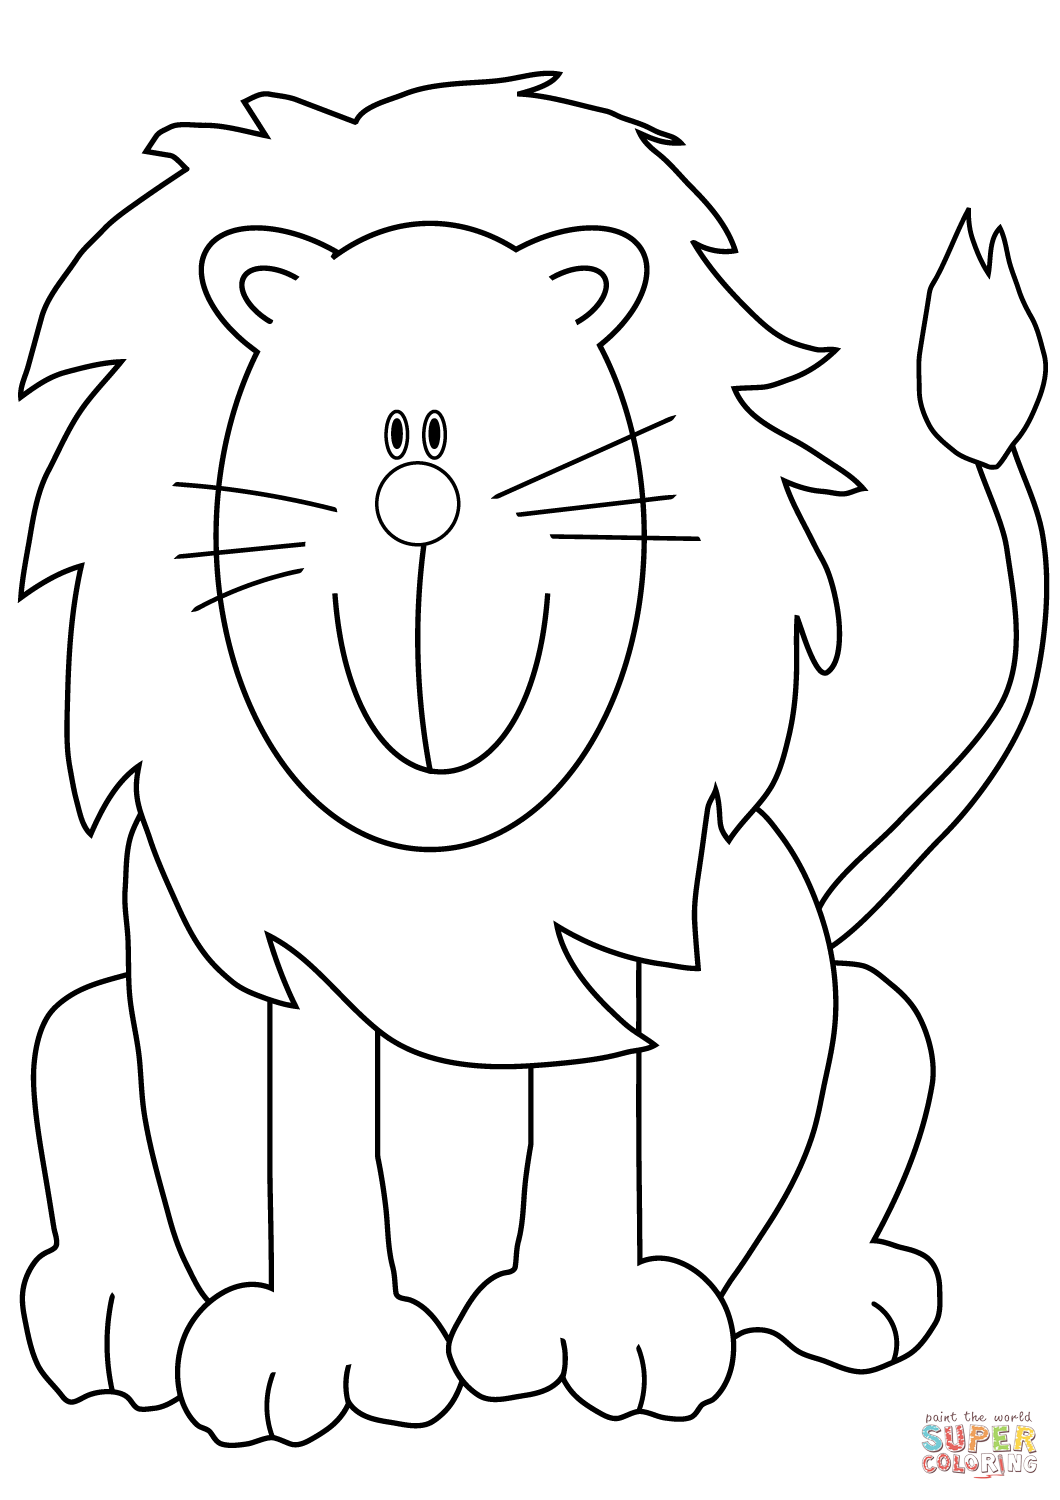 colour in lion lion to print for free lion kids coloring pages colour lion in